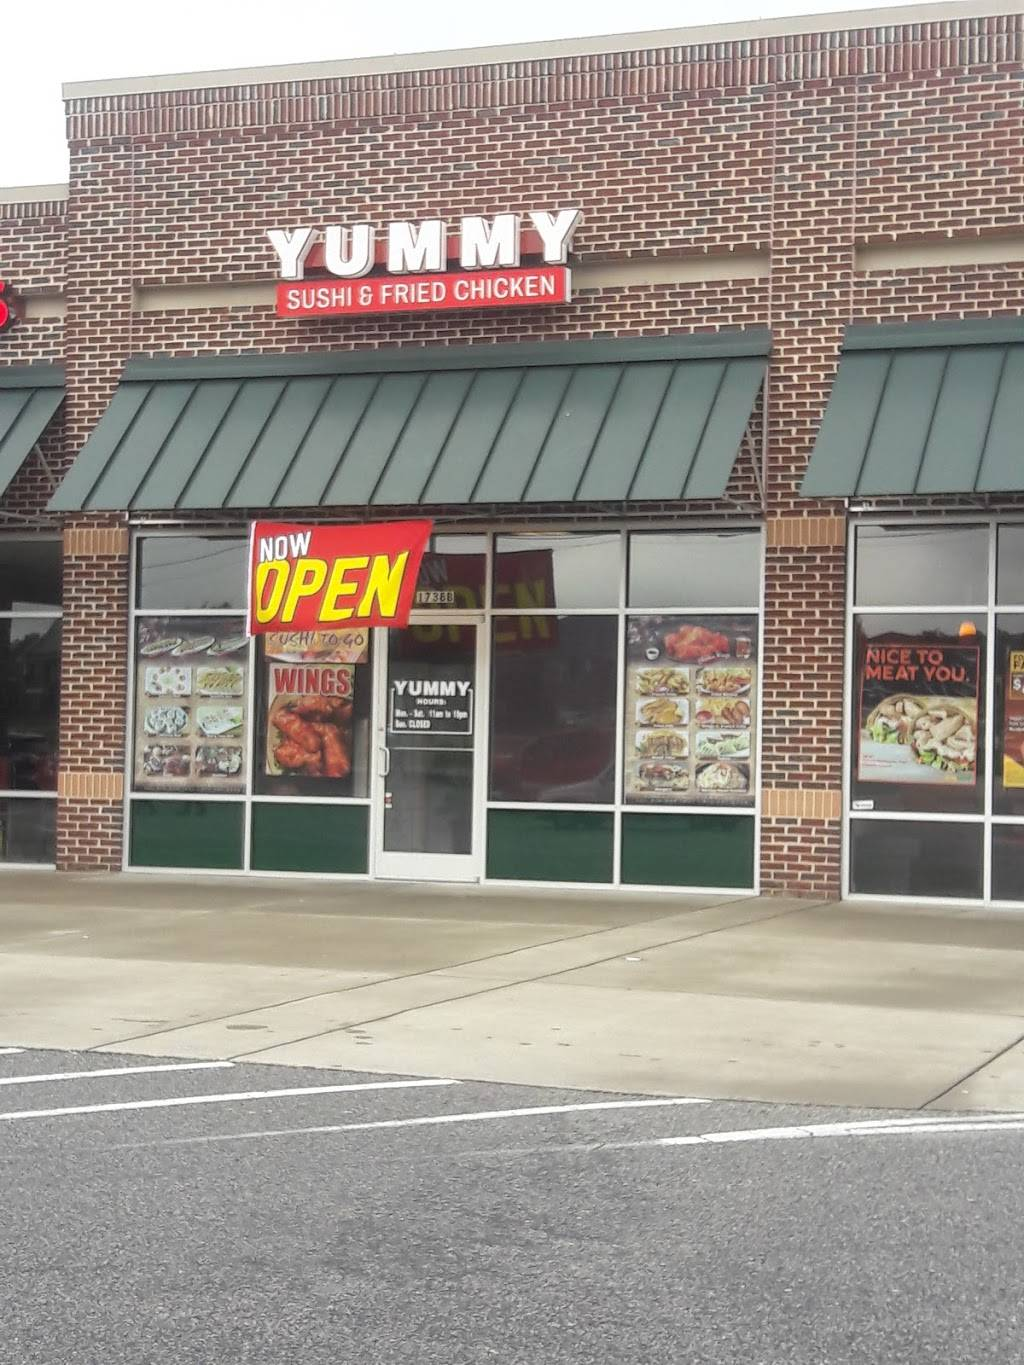 Yummy | restaurant | 1738 Bingham Dr suite b, Fayetteville, NC 28304, USA | 9103391801 OR +1 910-339-1801